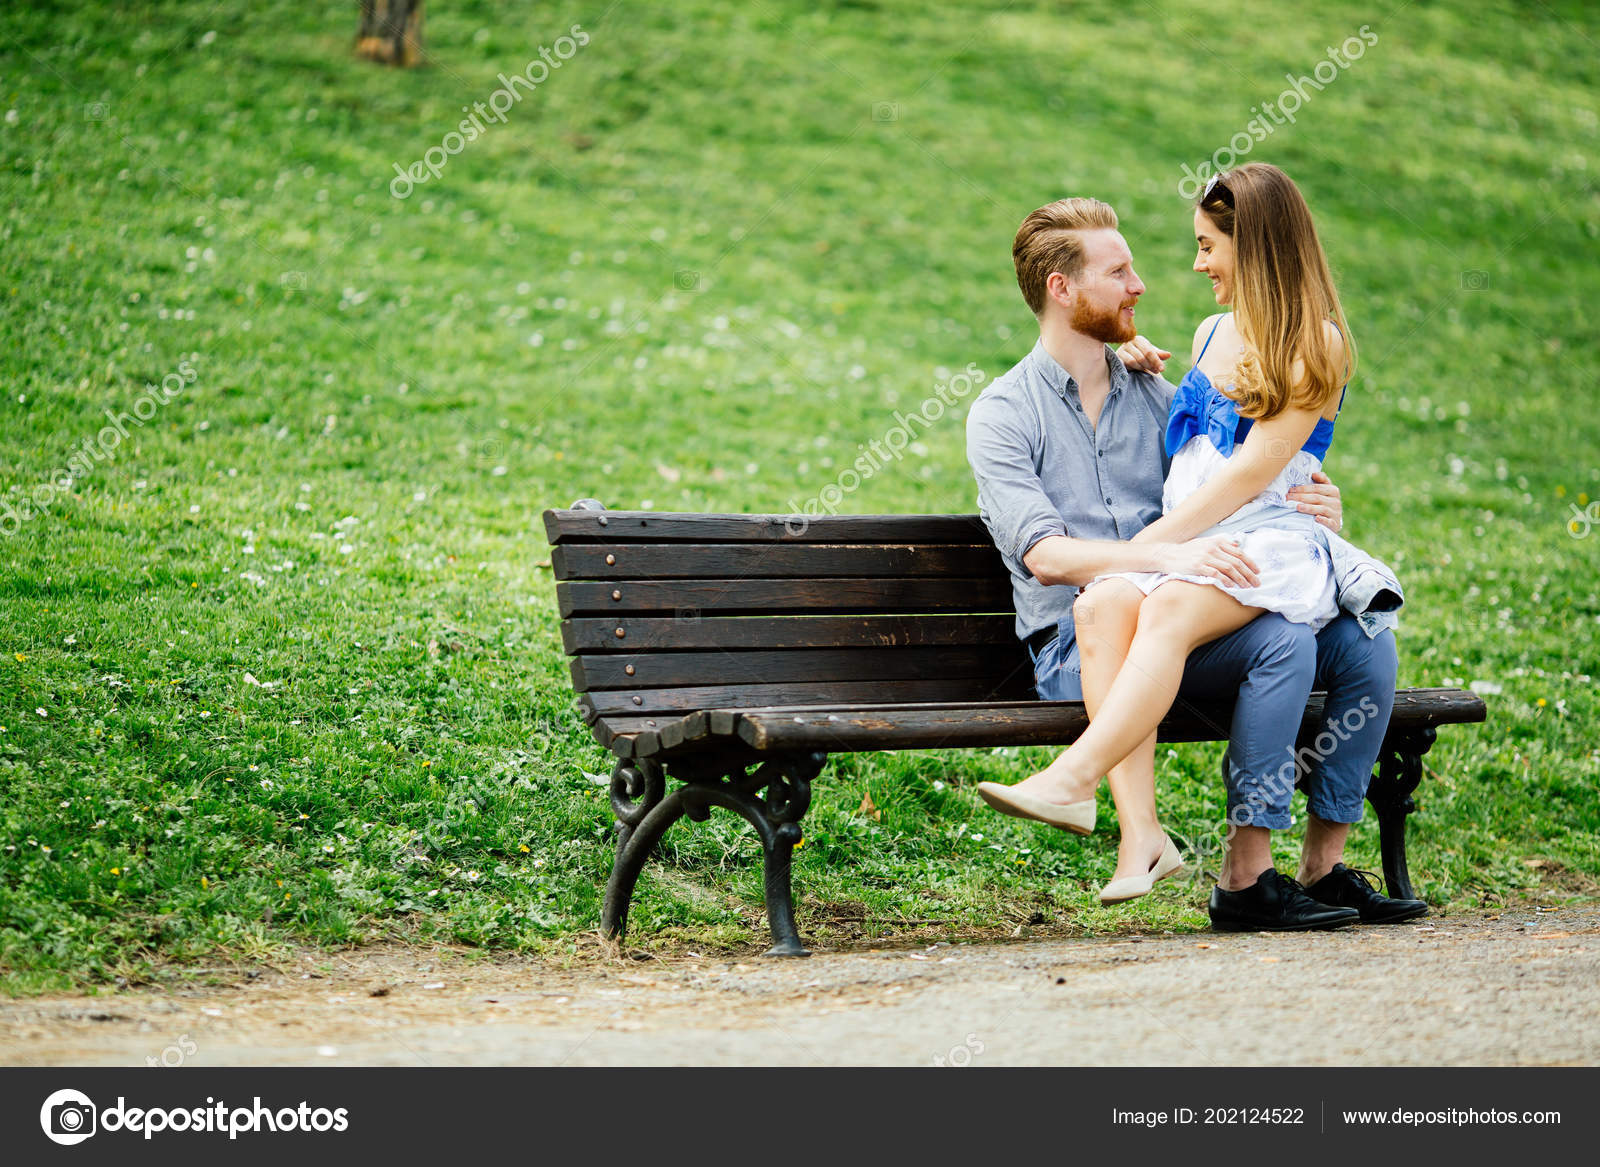 park city dating